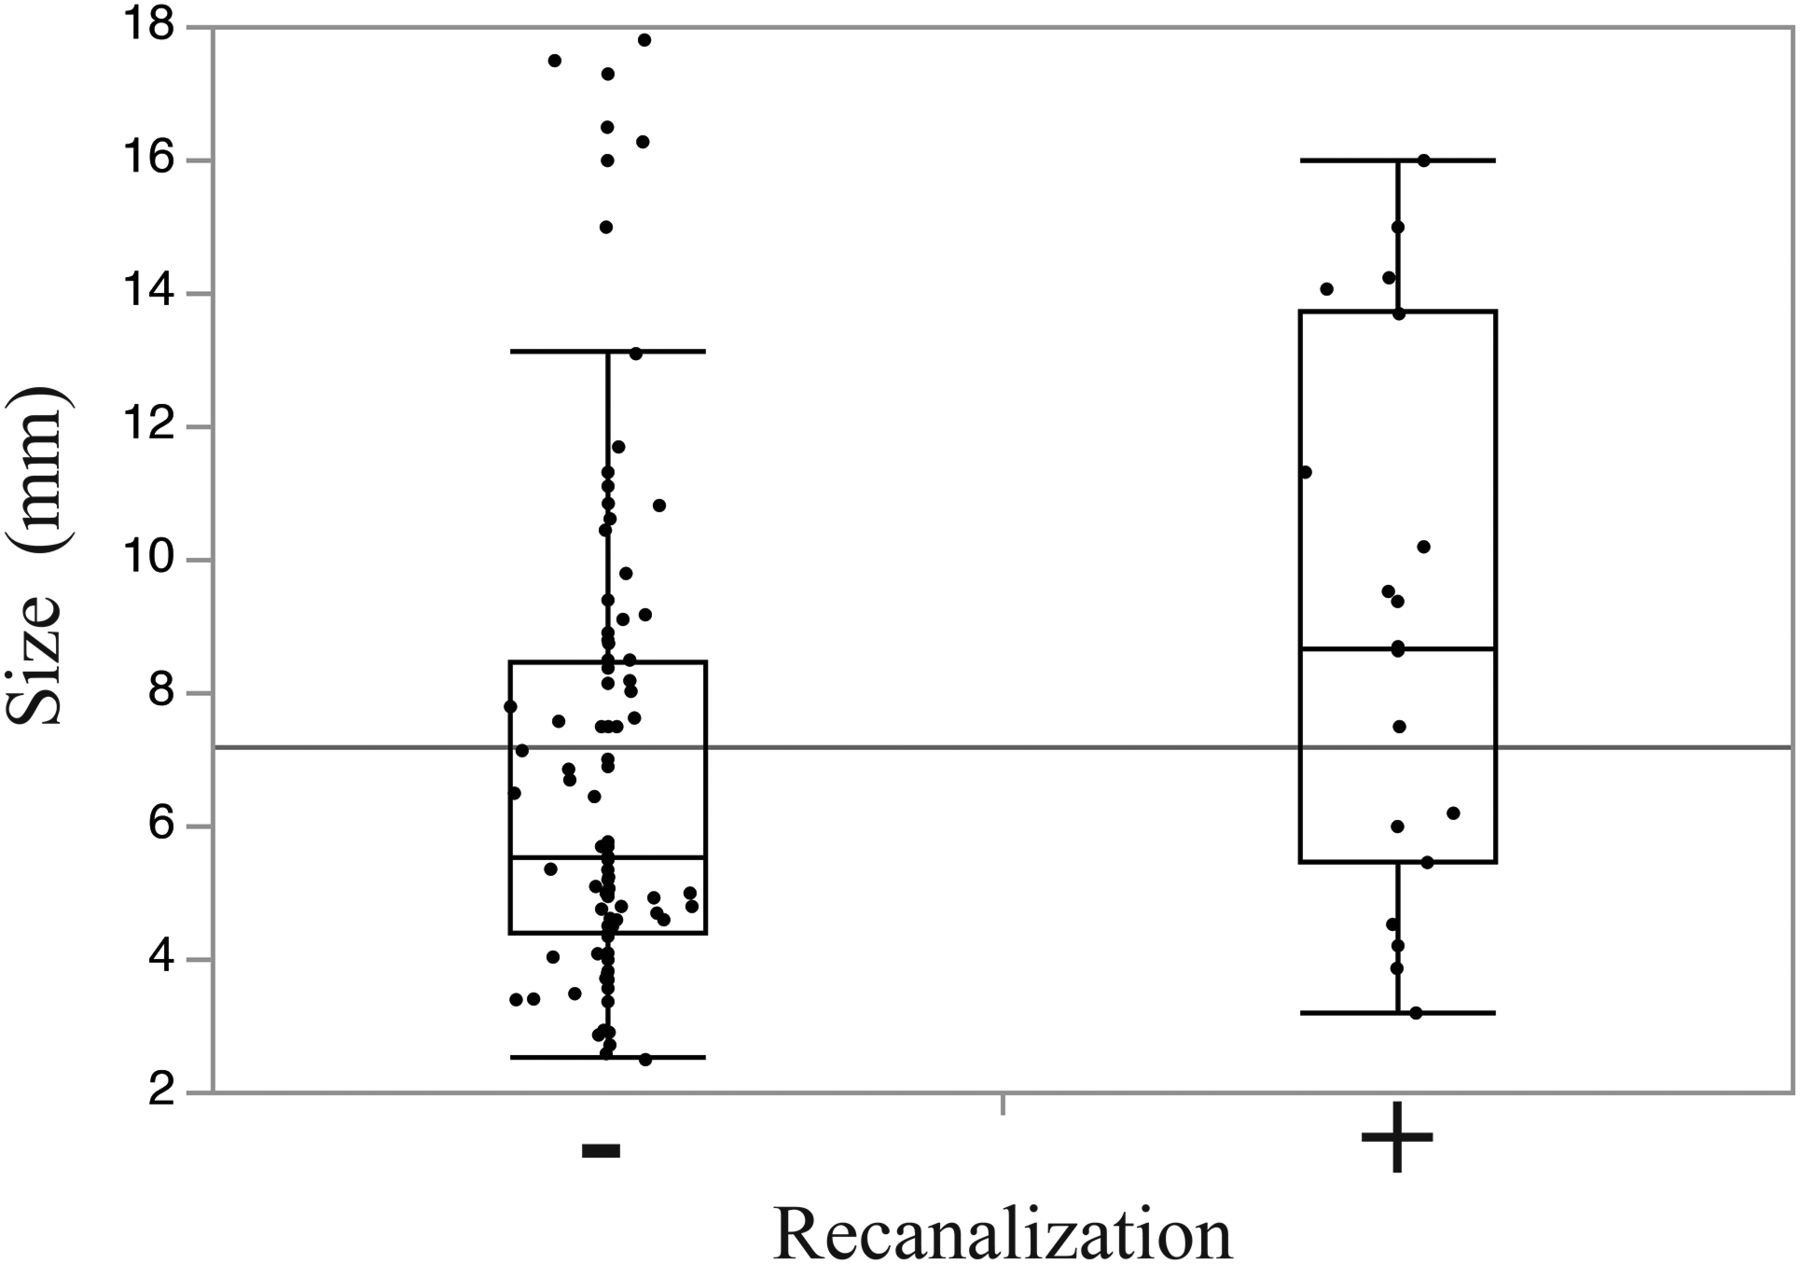 Long-Term Results and Follow-Up Examinations after Endovascular